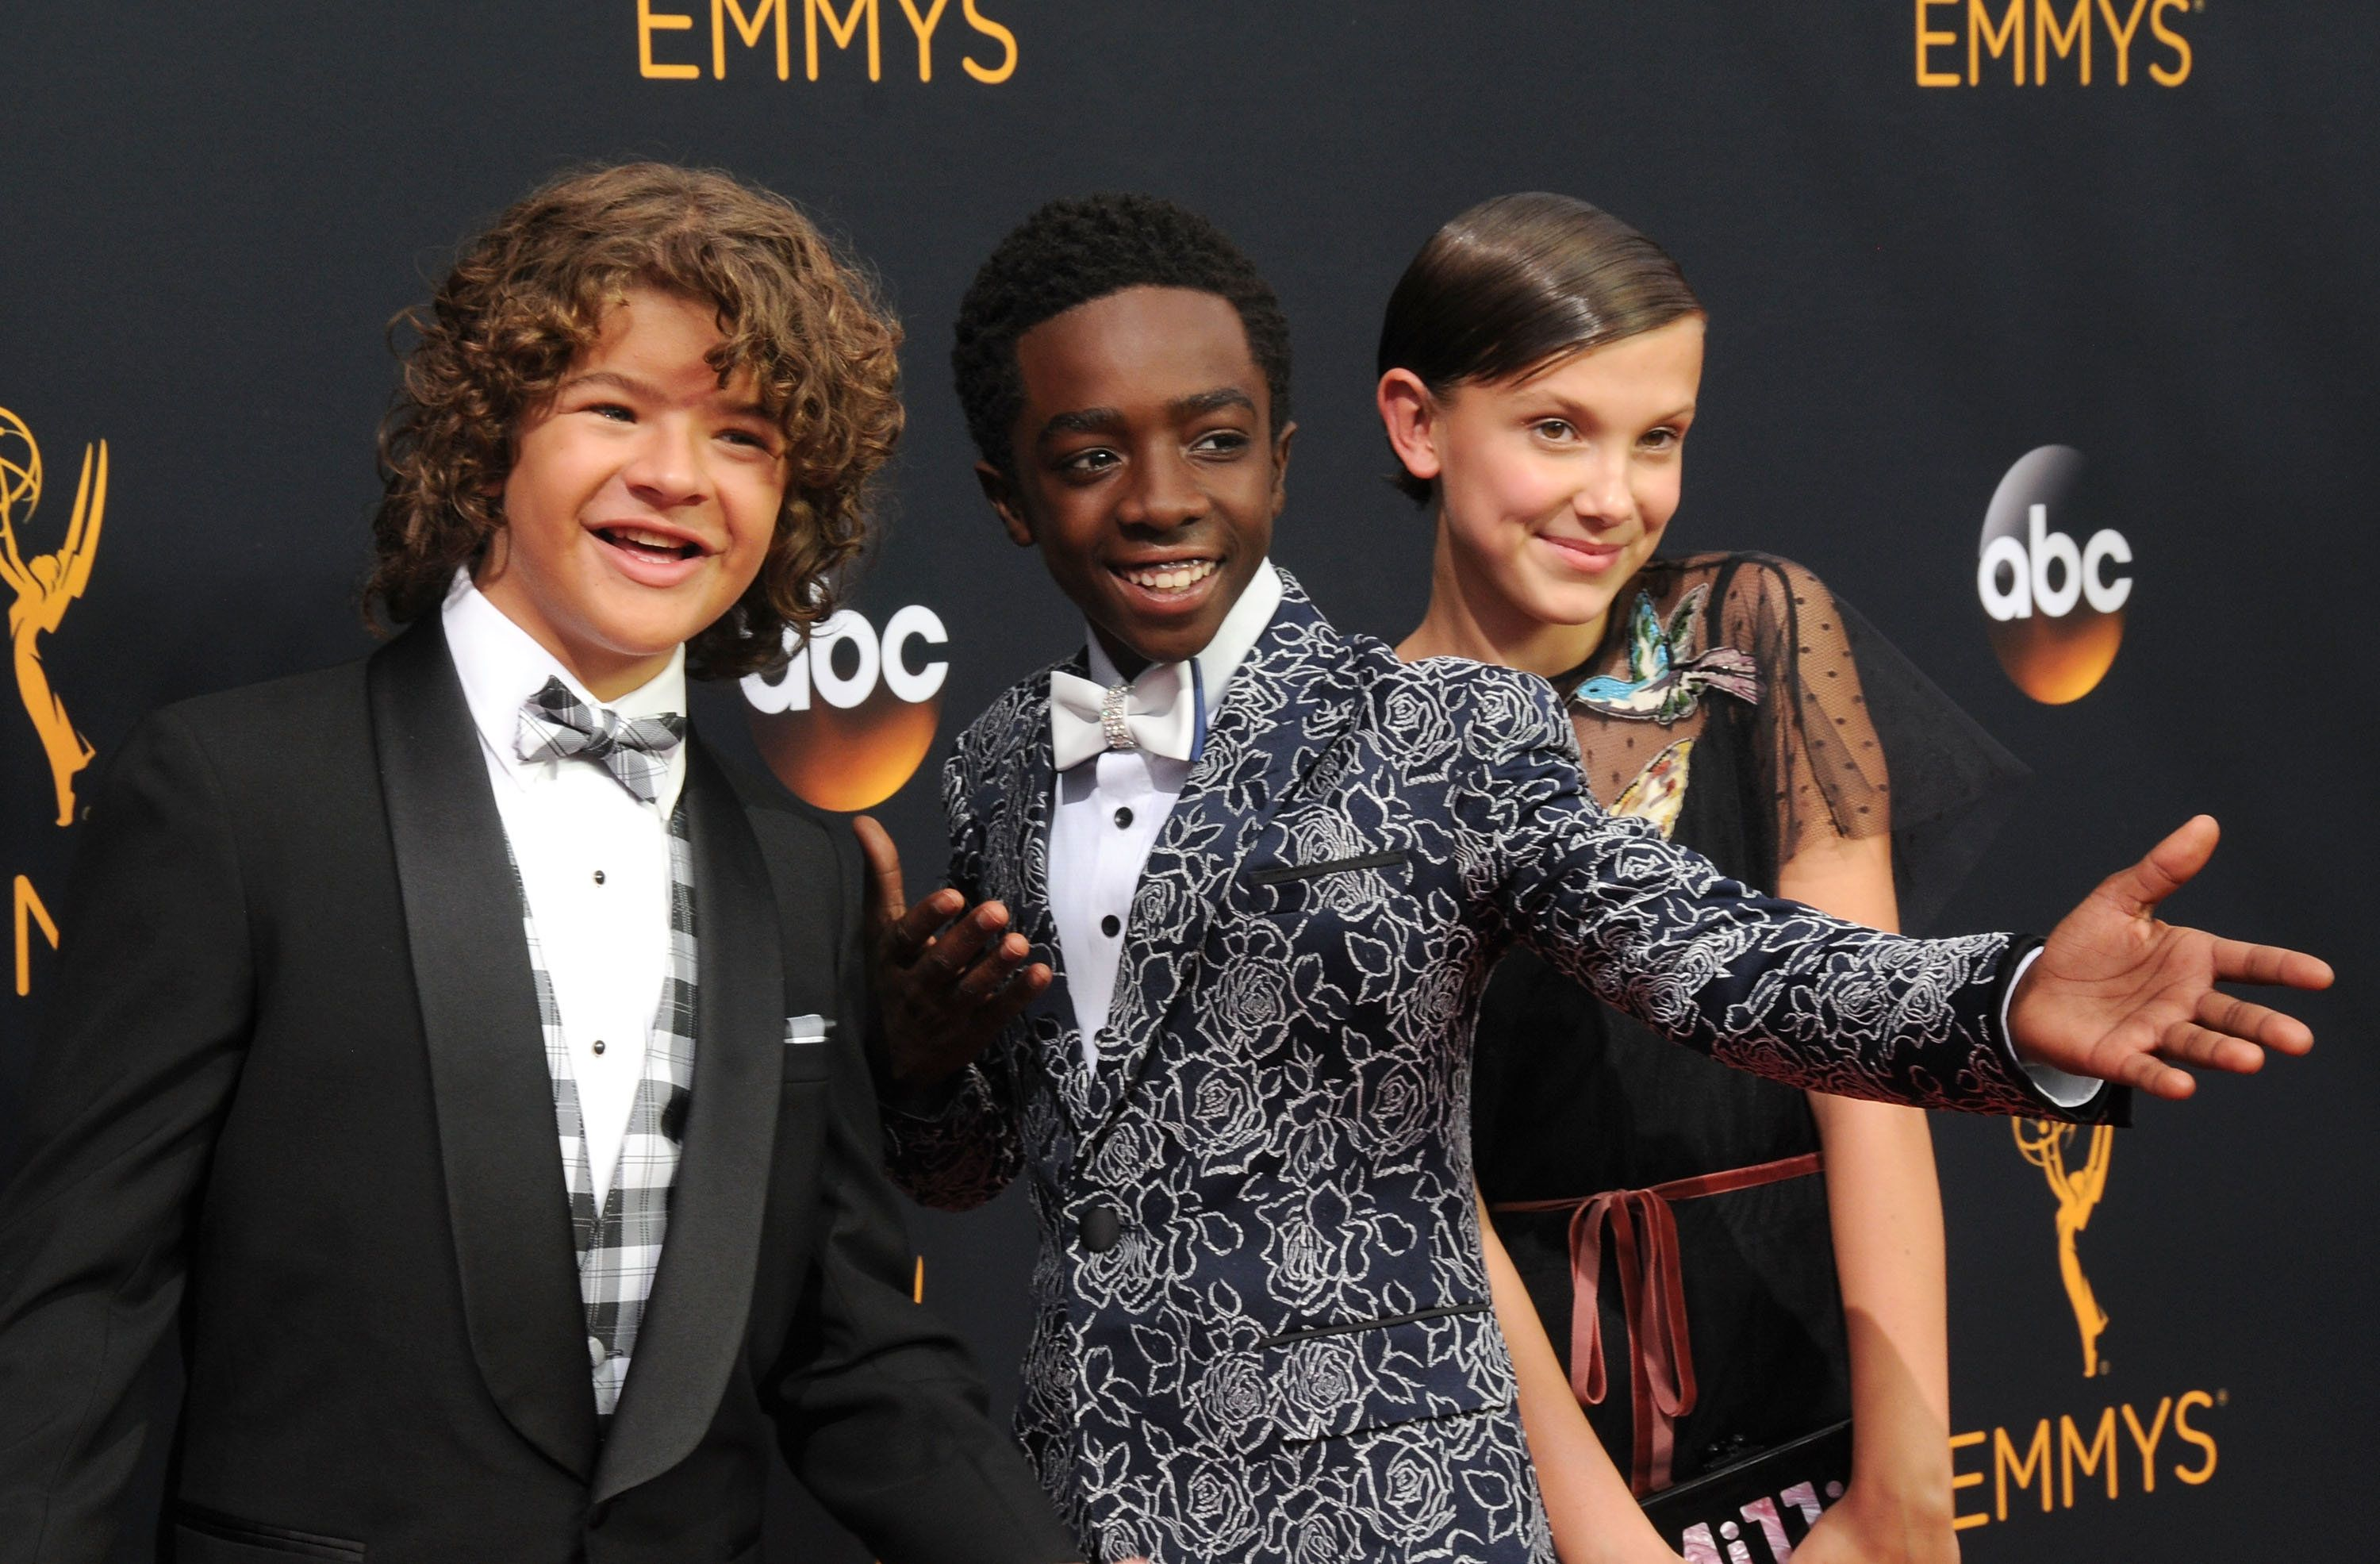 LOS ANGELES, CA - SEPTEMBER 18:  (L-R) Actors Gaten Matarazzo, Caleb McLaughlin and Millie Bobby Brown attend the 68th Annual Primetime Emmy Awards at Microsoft Theater on September 18, 2016 in Los Angeles, California.  (Photo by Barry King/Getty Images)